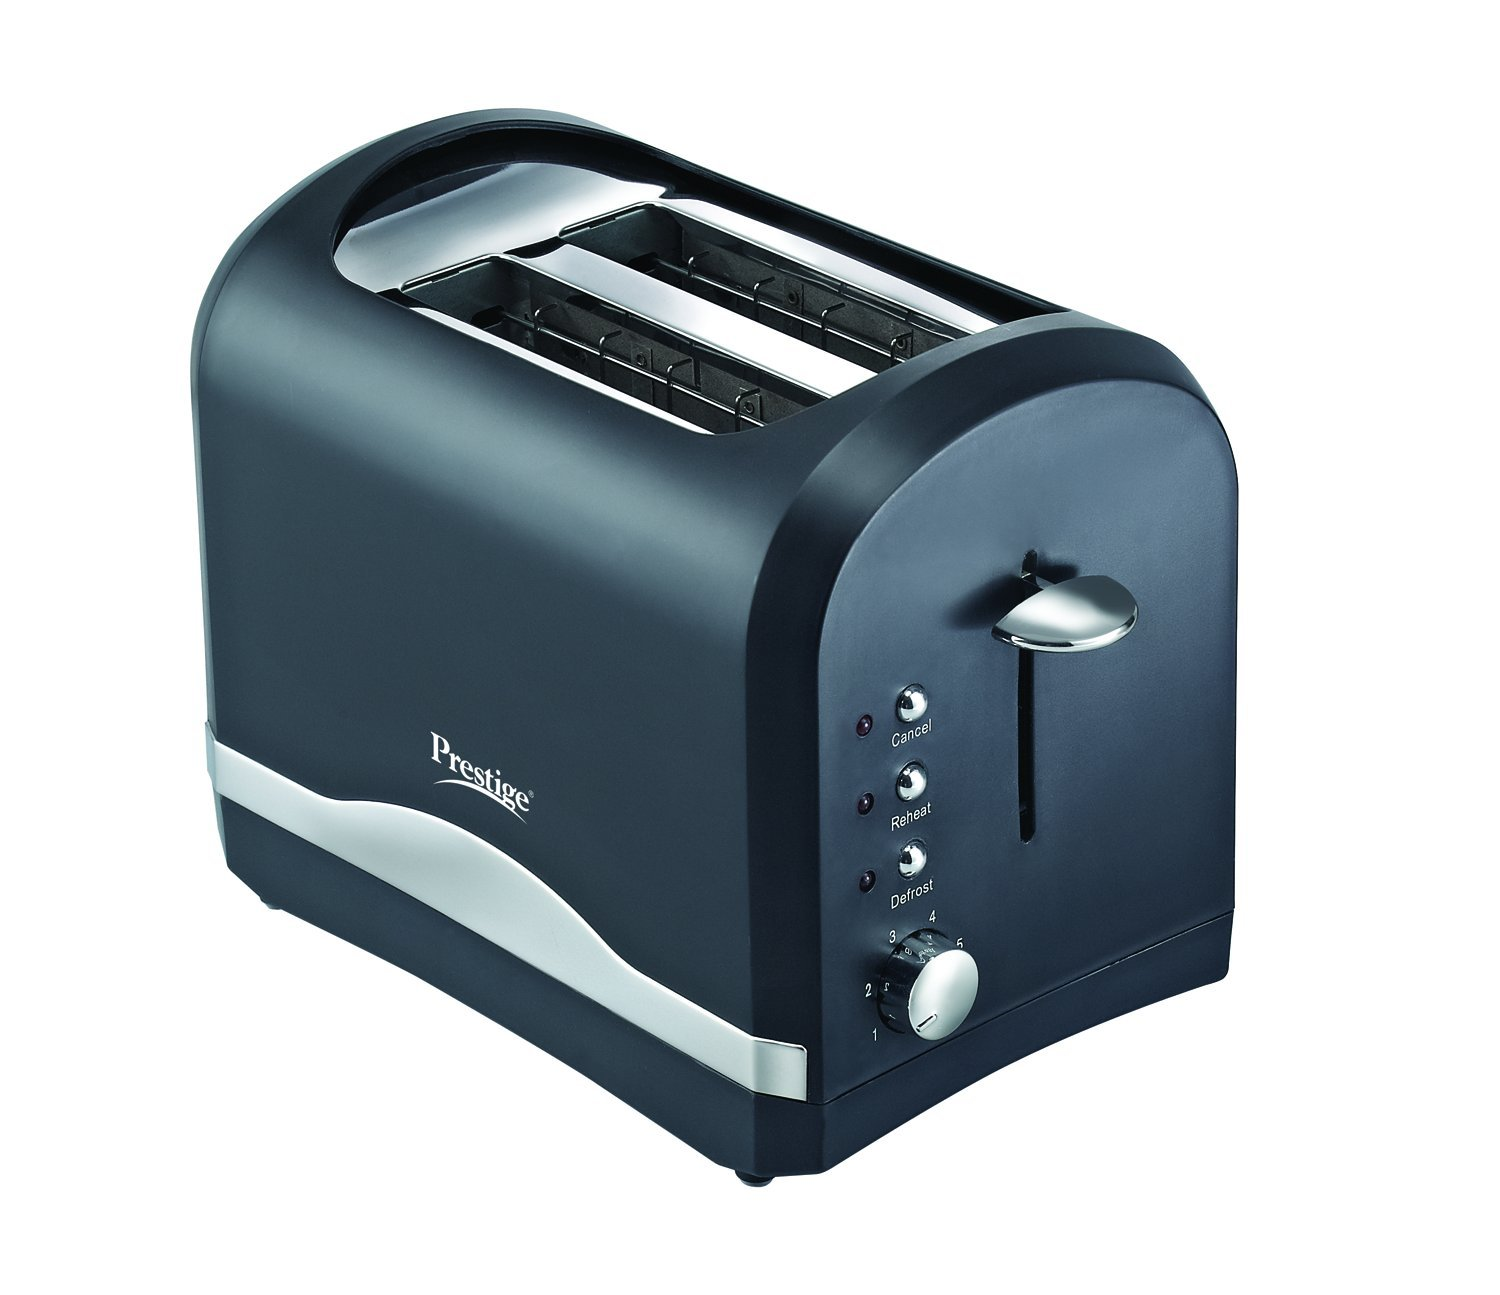 Prestige PPTPKB 800-Watt 2-Slice Pop-up Toaster (Random)